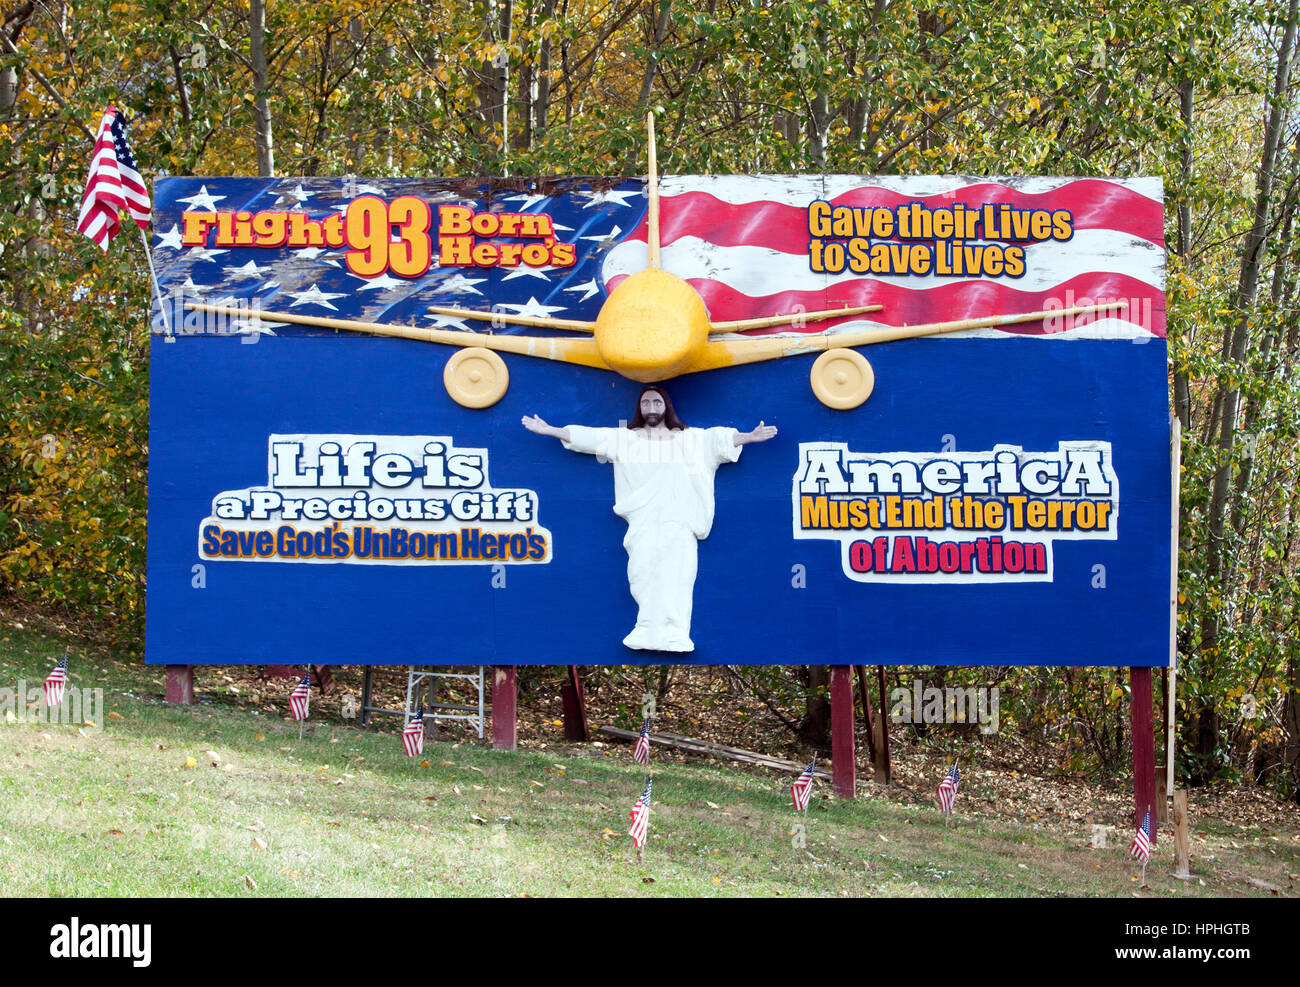 Flight 93 Abortion Billboard in Stoystown, Pennsylvania - Stock Image